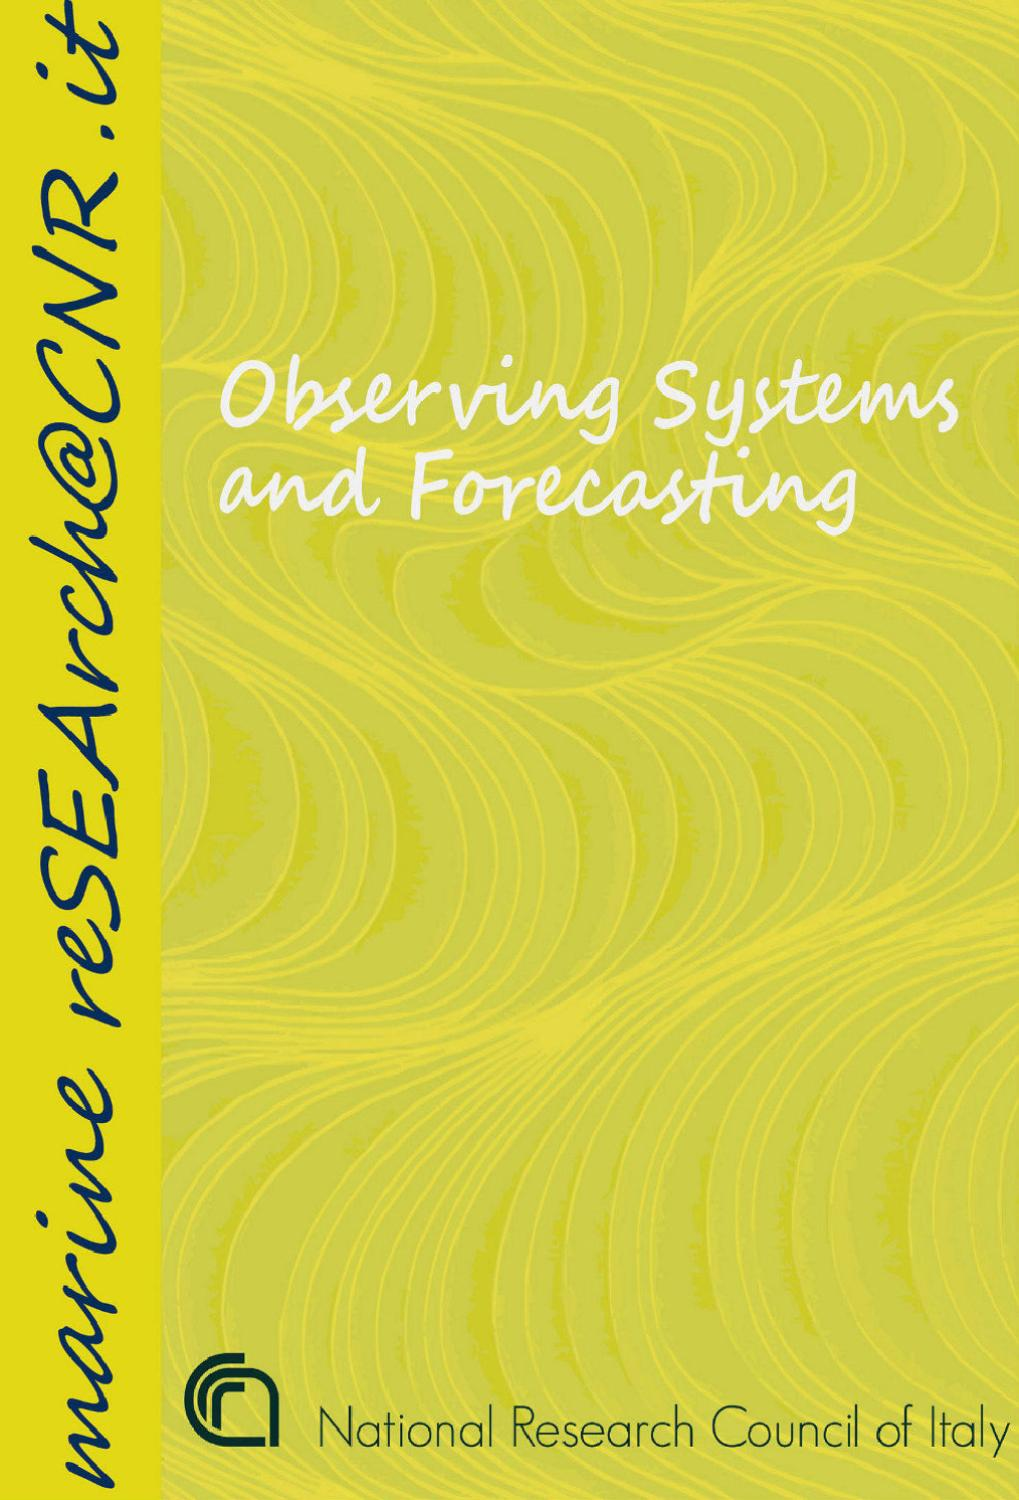 Realizing Teracomputing: Proceedings of the Tenth Ecmwf Workshop on the Use of High Performa[...]o